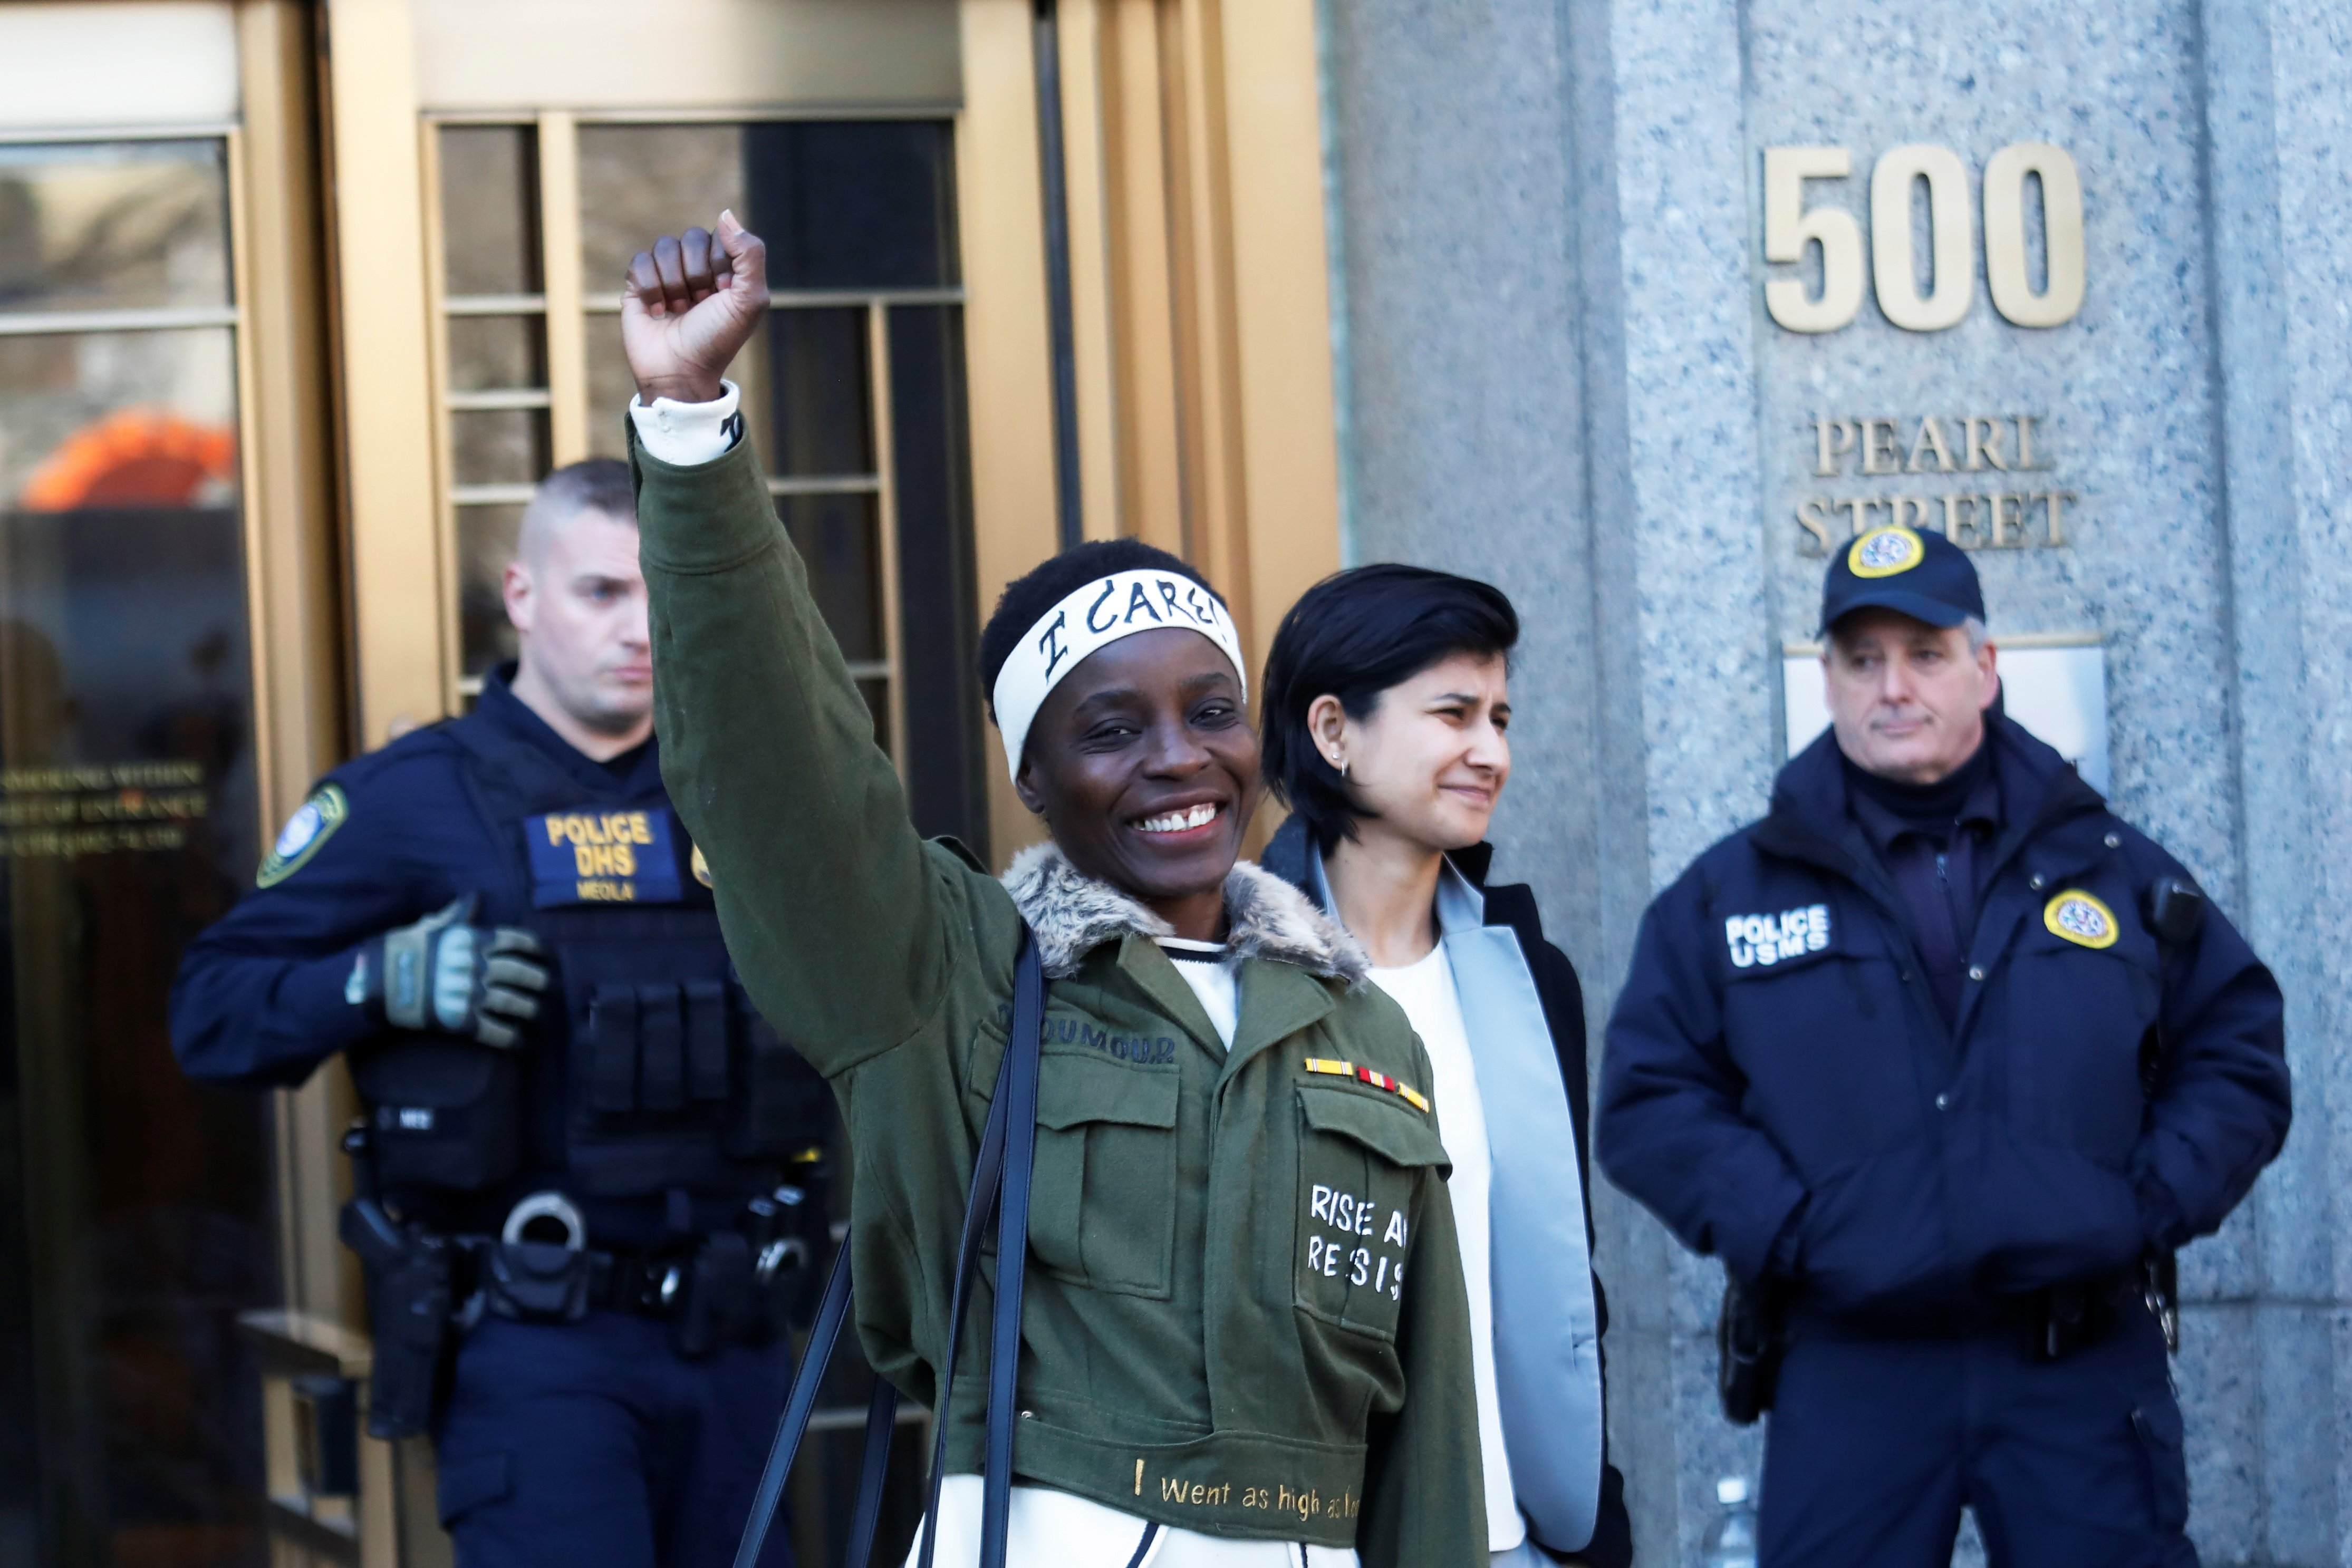 Therese Patricia Okoumou raises her fist after her sentencing for conviction on attempted scaling of the Statue of Liberty to protest the U.S. immigration policy, outside a federal court in New York, U.S., March 19, 2019. REUTERS/Shannon Stapleton